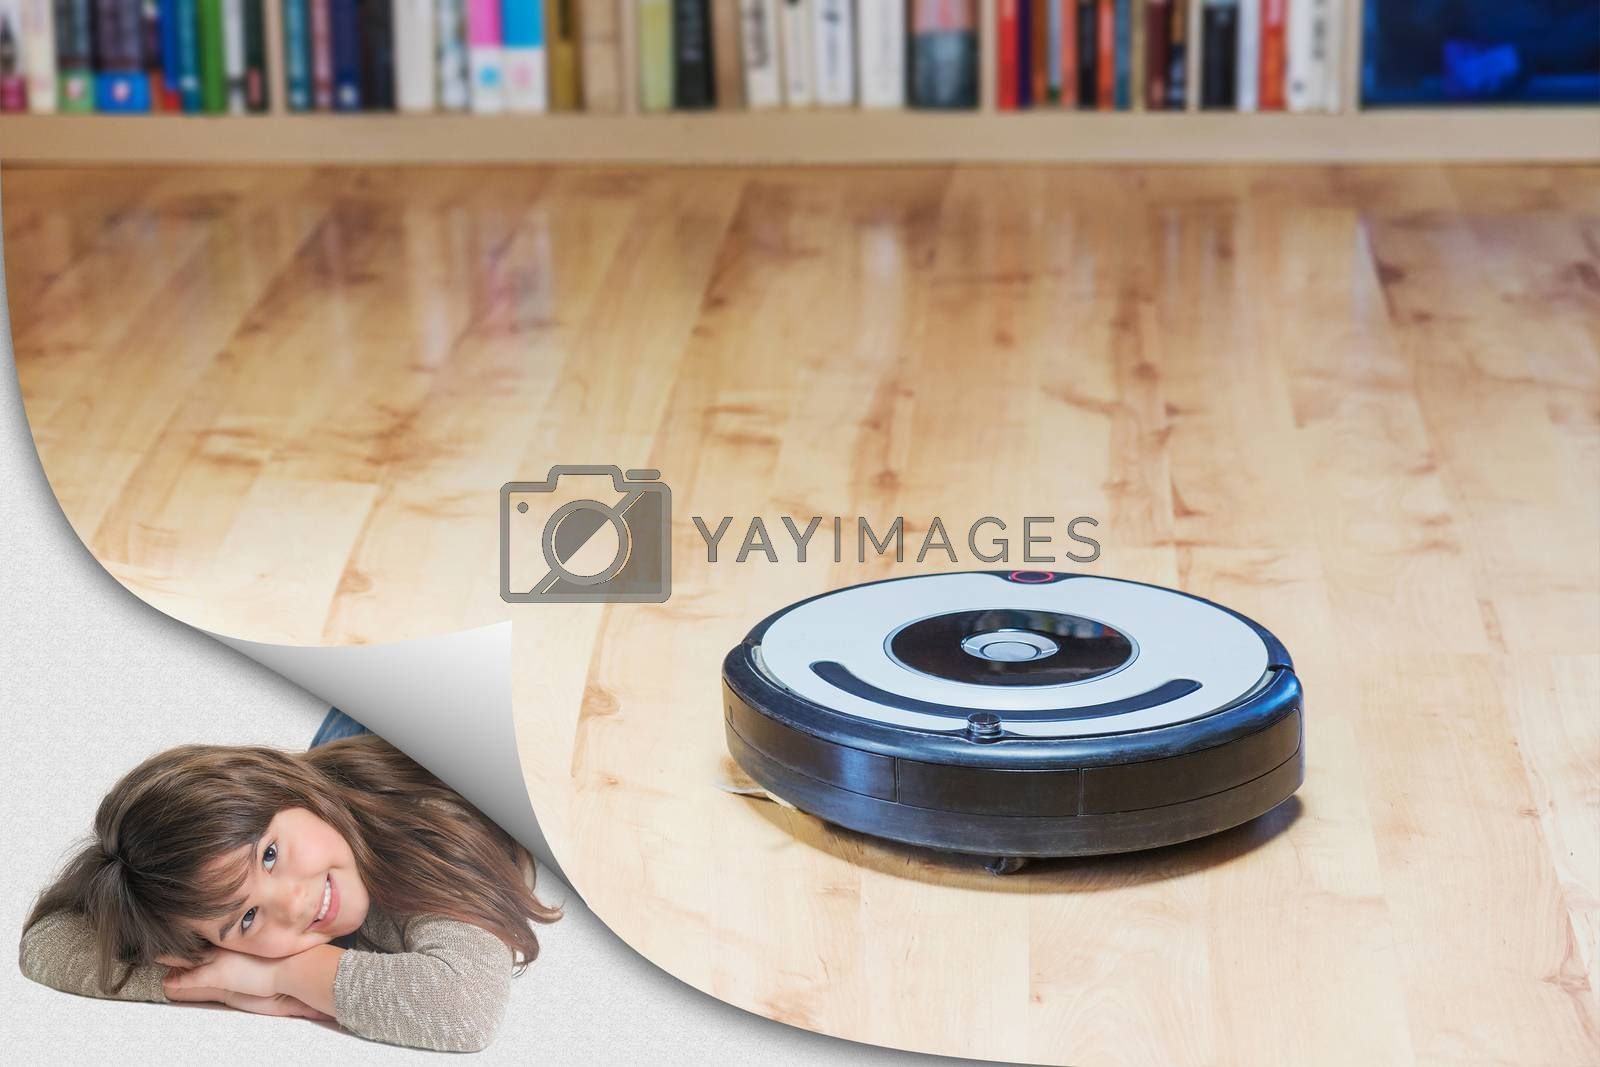 Using the robotic vacuum cleaner to clean the floor. Smiling cute little girl is lying in an exposed corner looking at the camera. All potential trademarks and control buttons are removed.